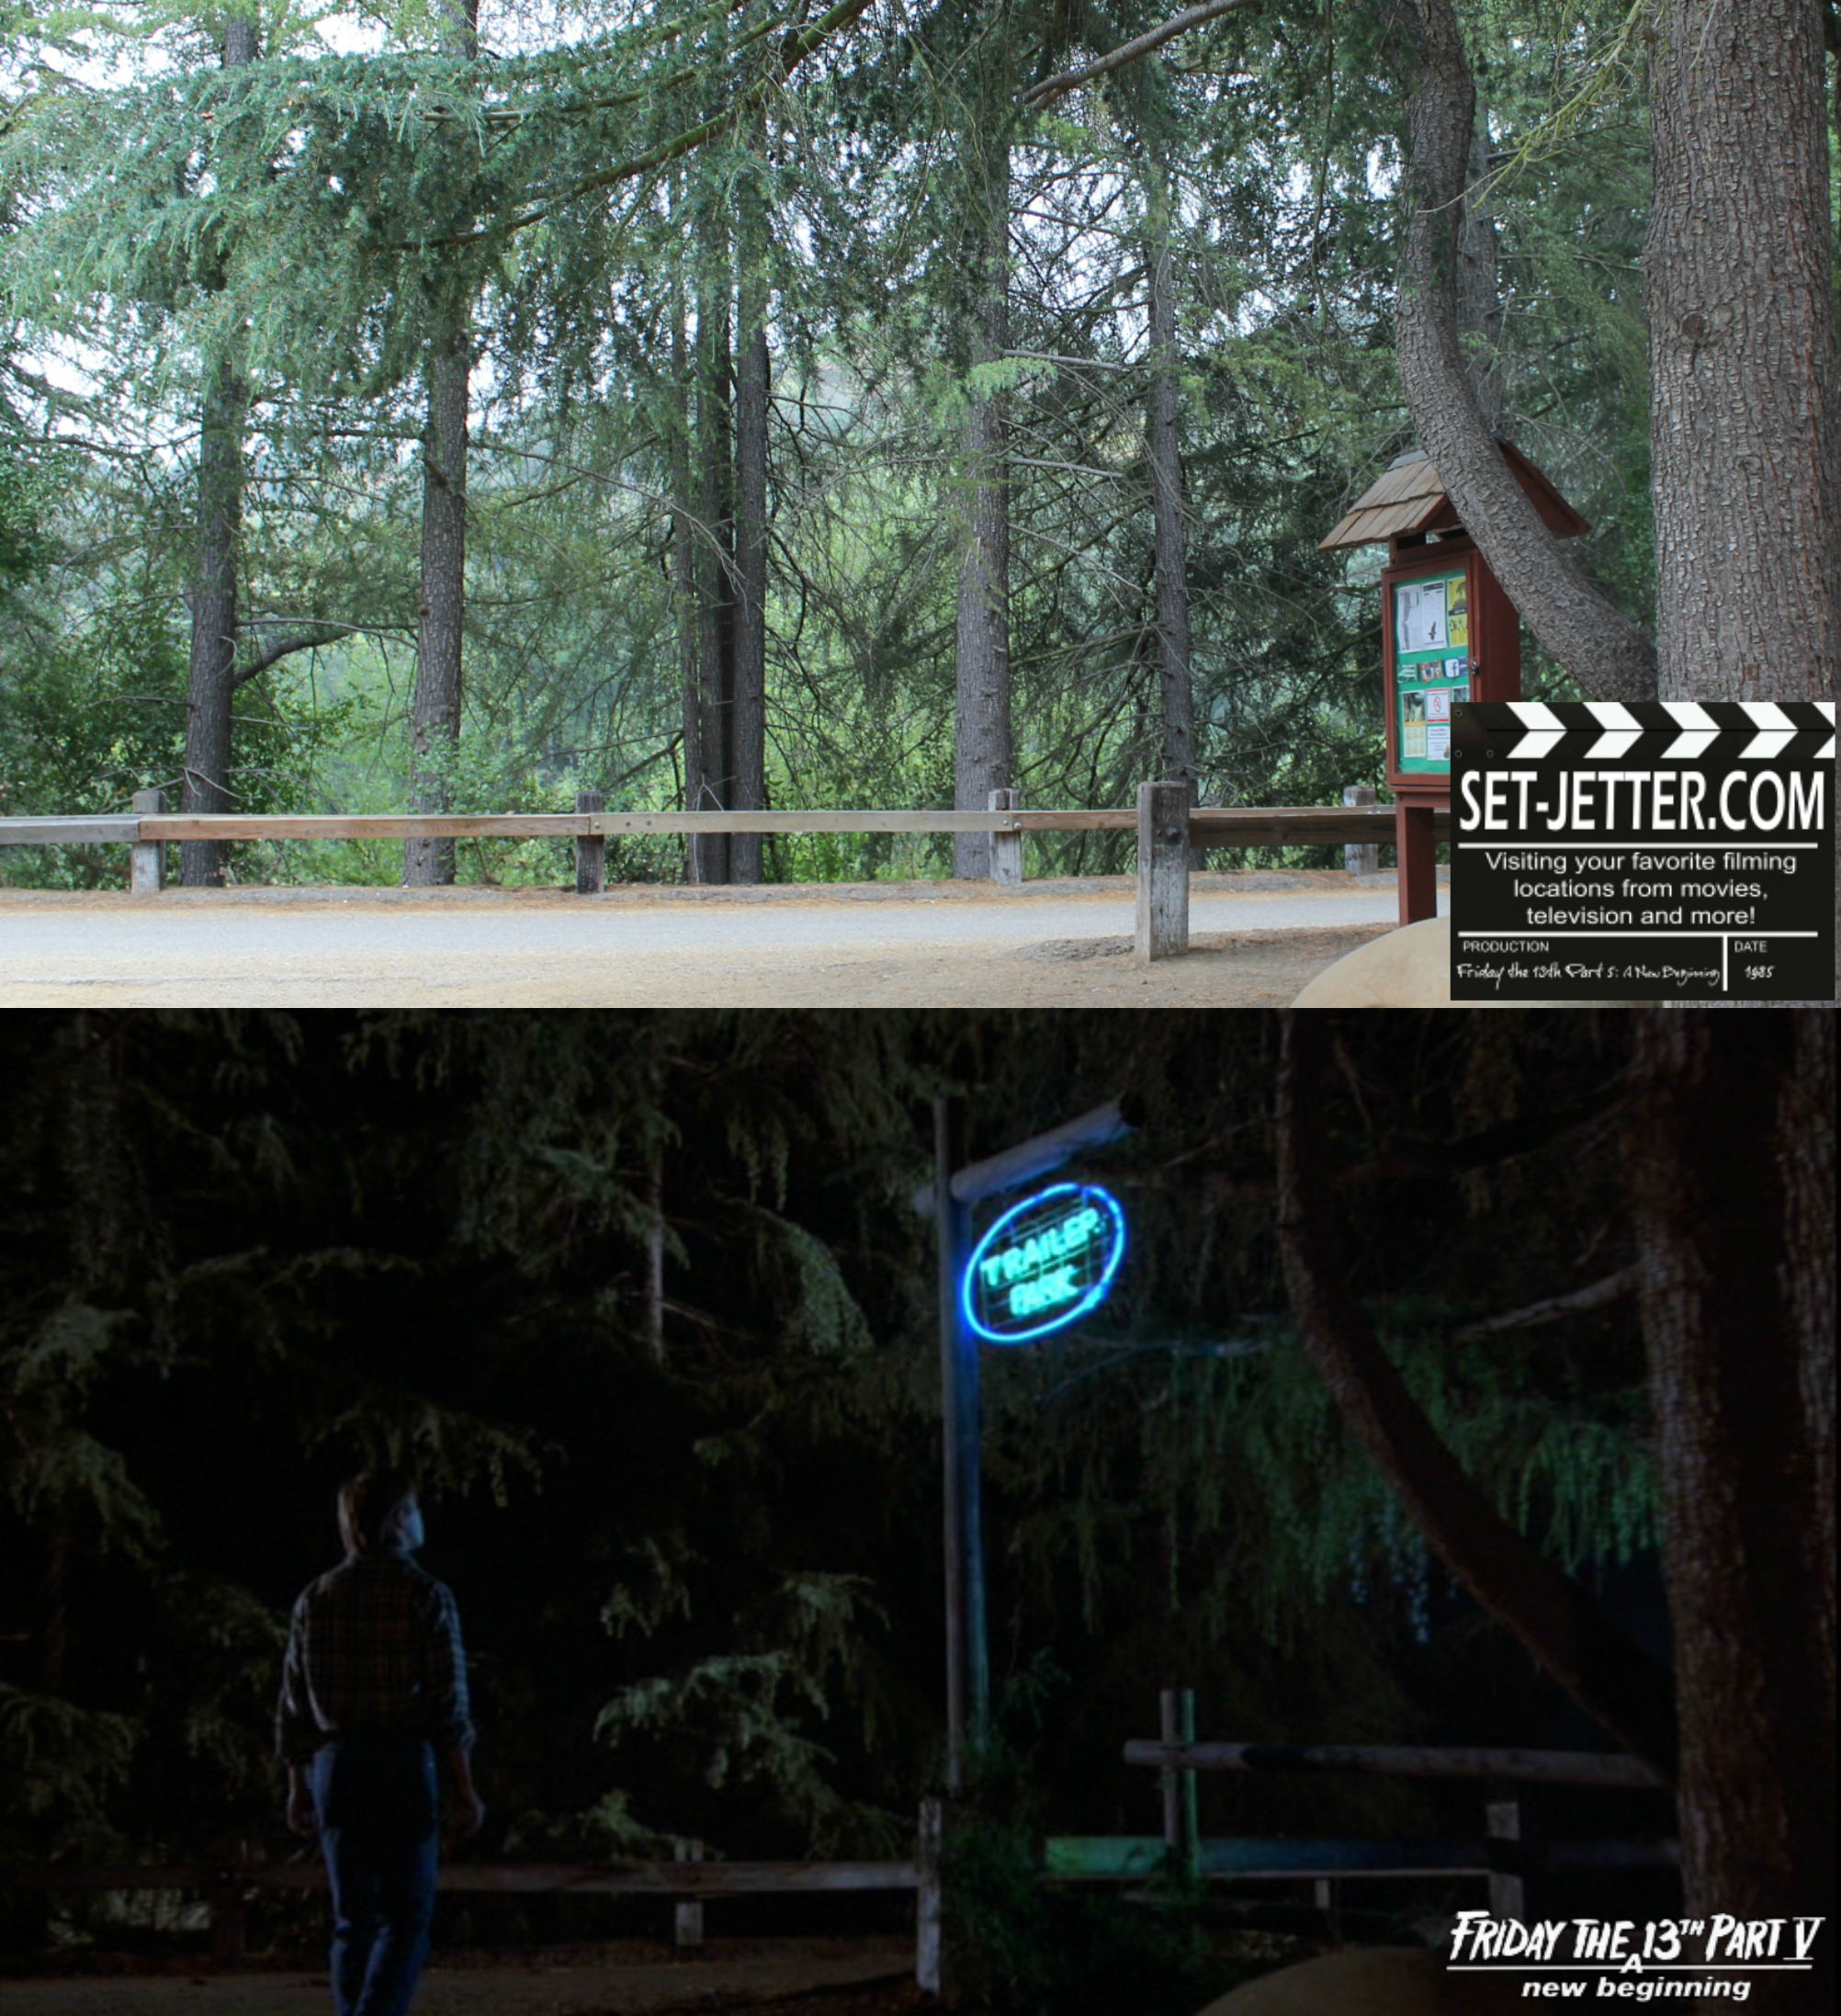 Friday the 13th Part V comparison 40.jpg